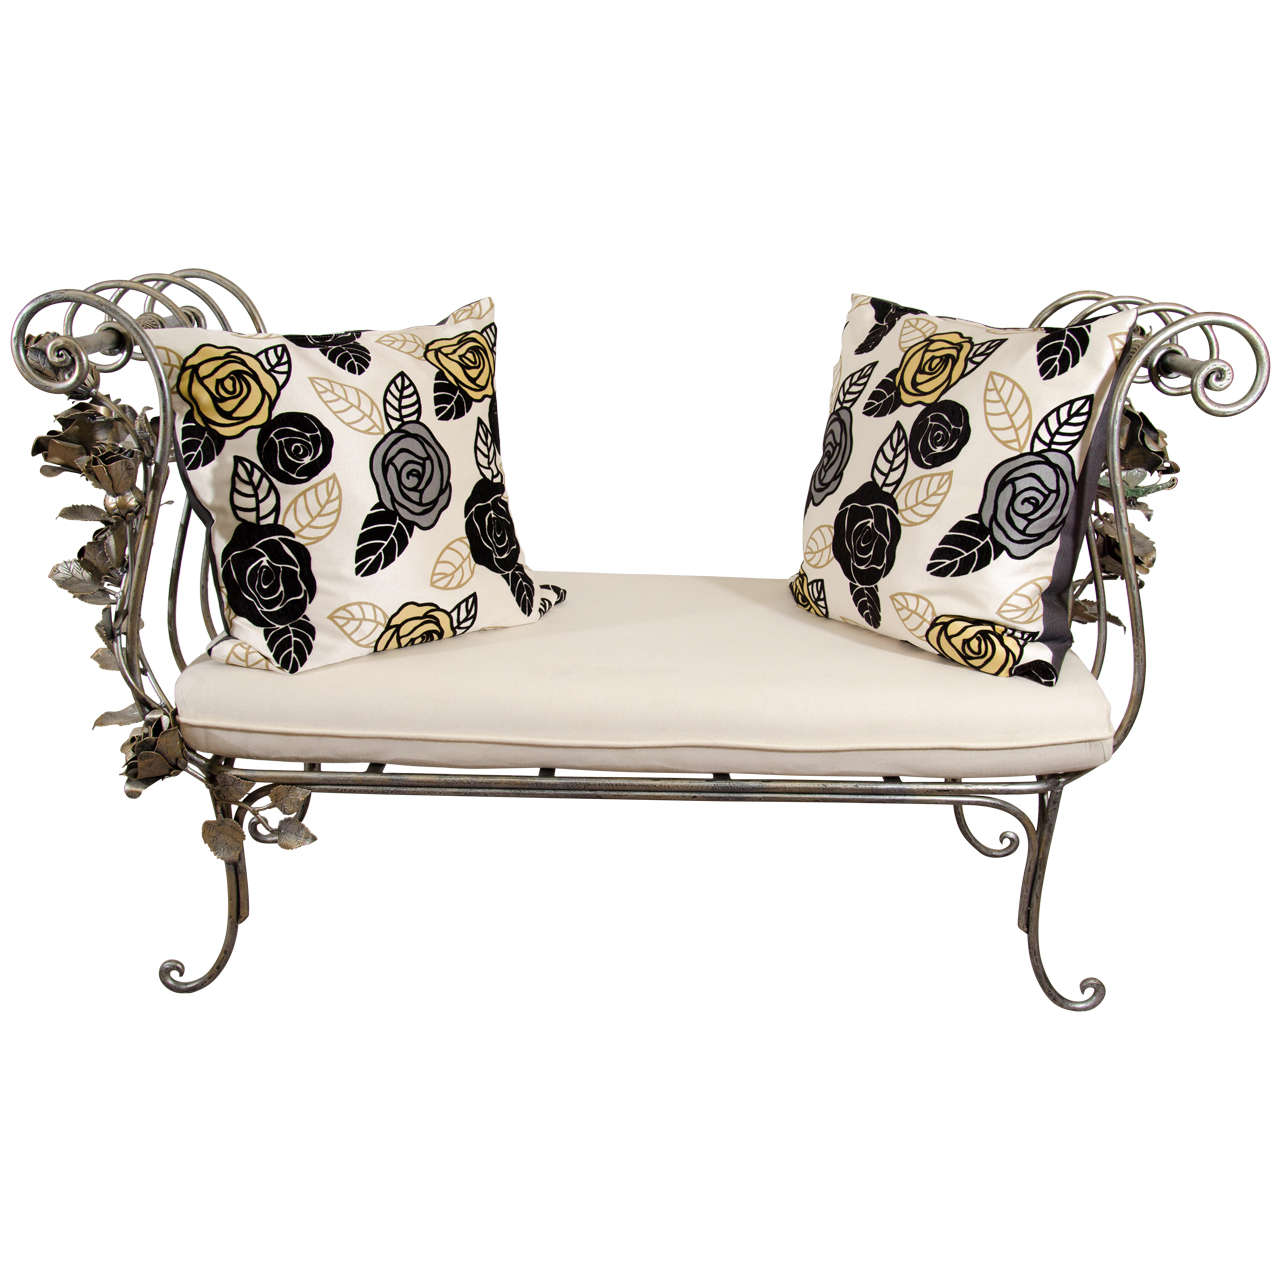 Vintage Hand Wrought Iron Bench With Scroll Arms And Rose Detail For Sale At 1stdibs